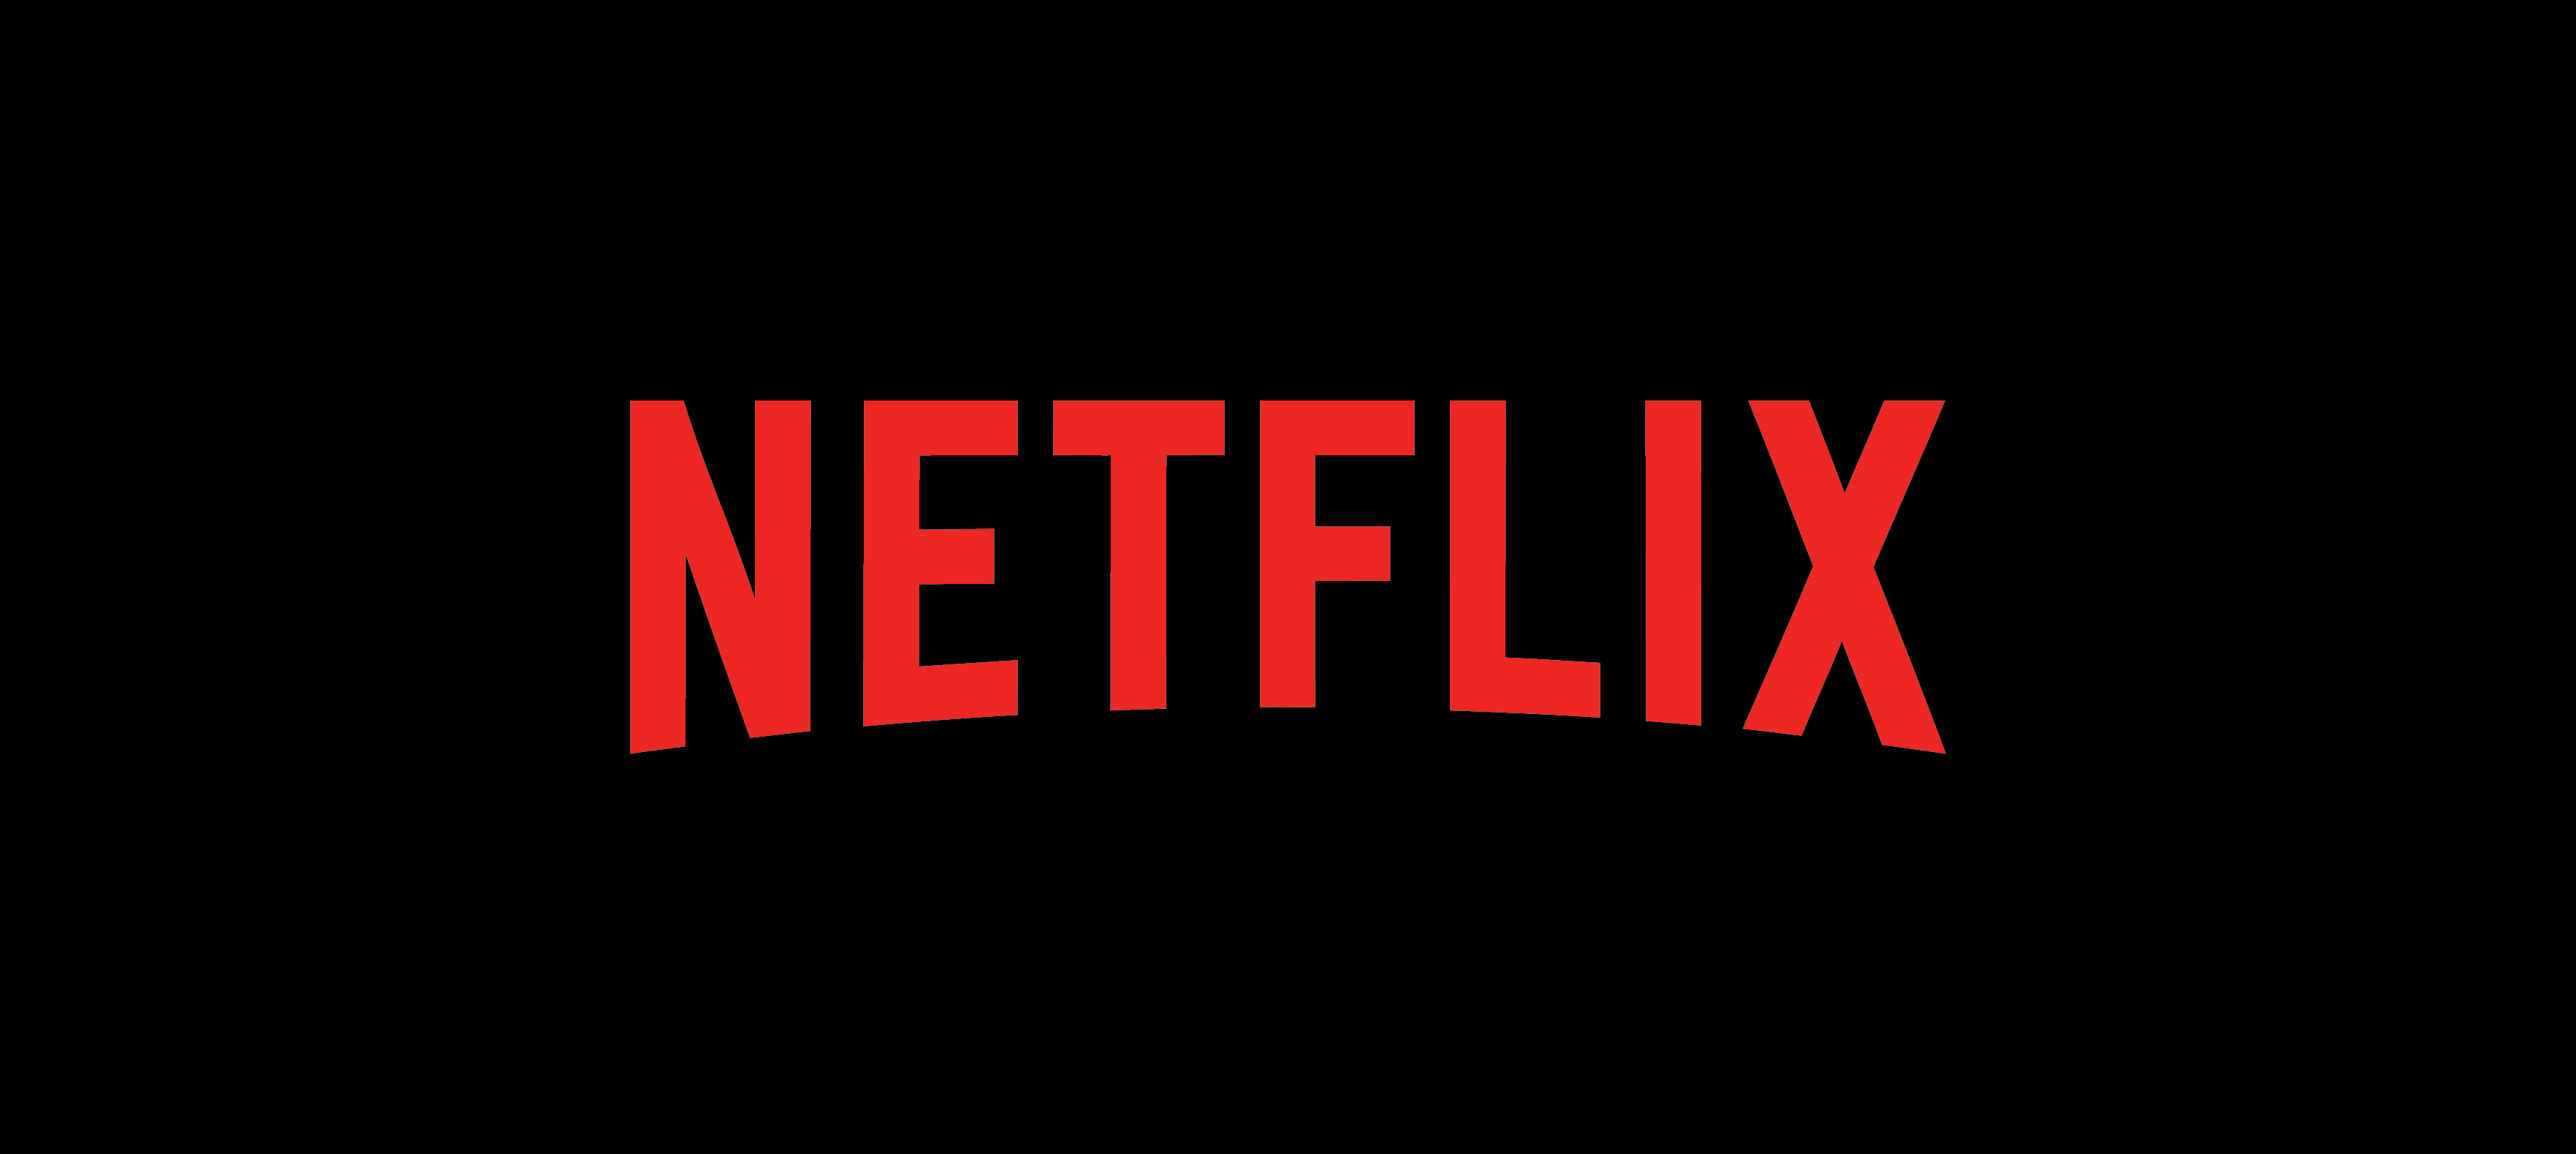 Netflix_background